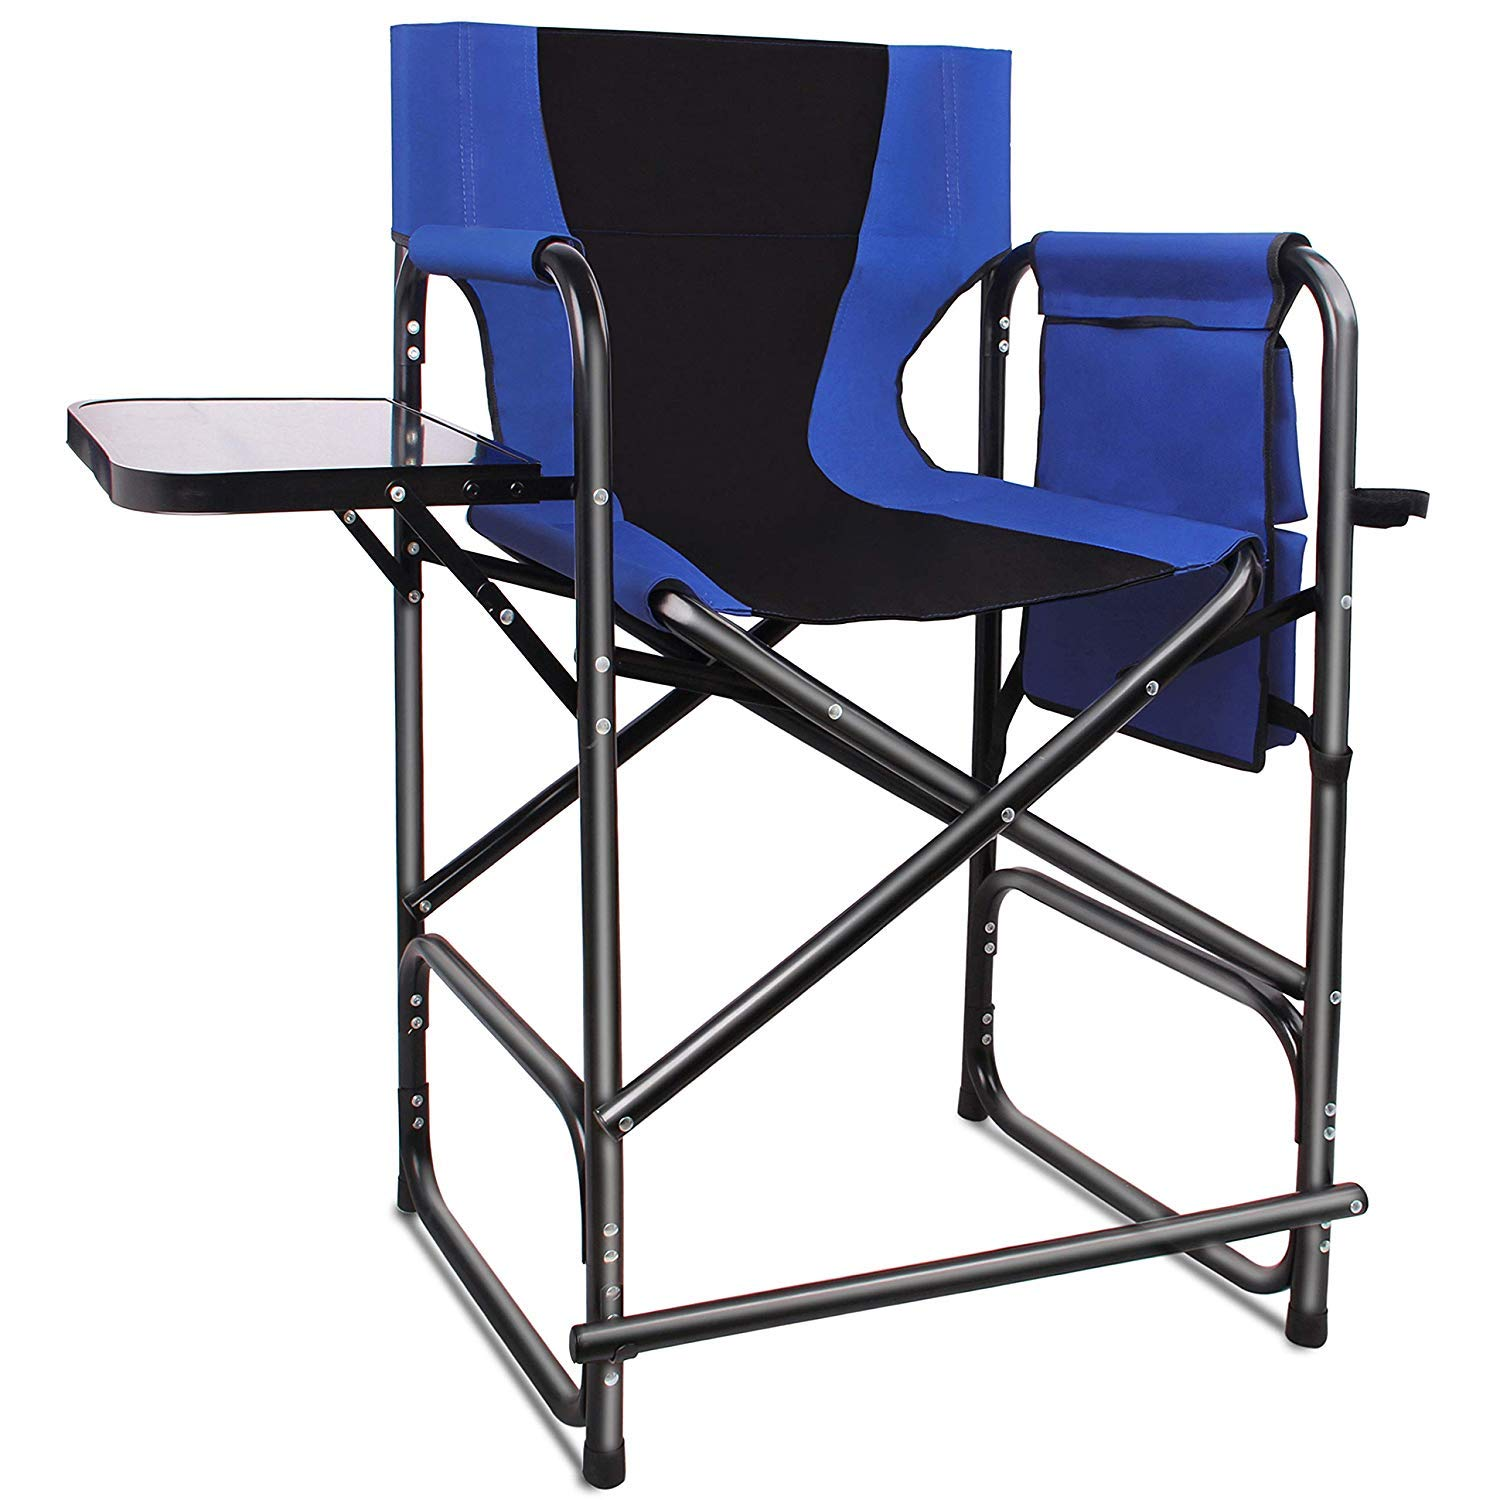 Tall Folding Directors Chair Portable Camping Chair - Lightweight Full Aluminum Frame Makeup Artist Chair with Side Table Storage Bag Footrest 300 lbs Supports 24 inch Seat Height by AGOOL